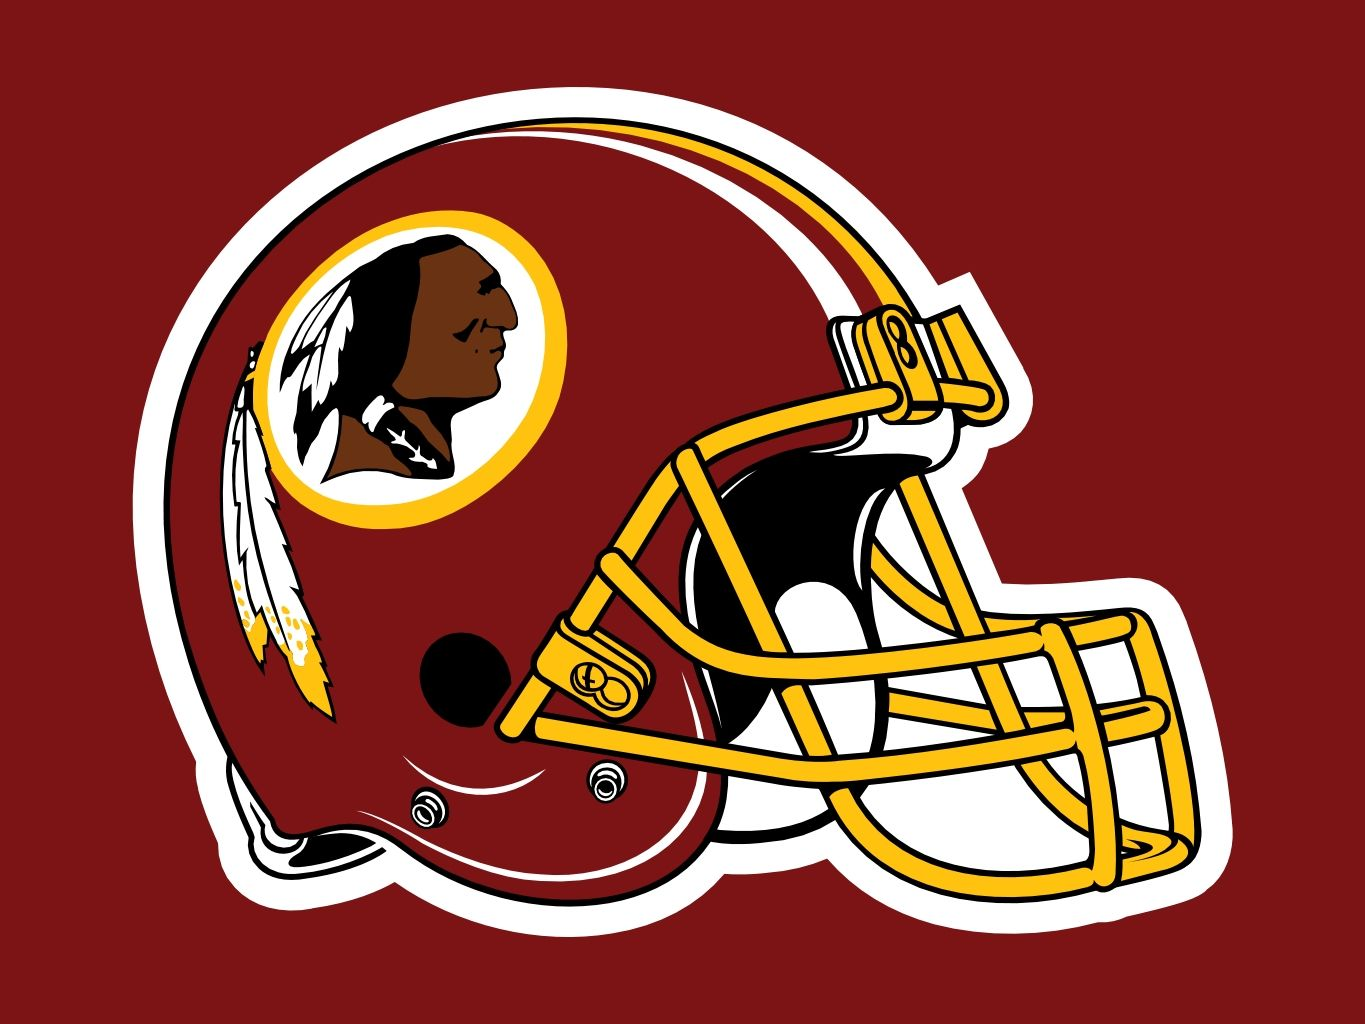 The Washington Redskins were founded in 1932, but the team